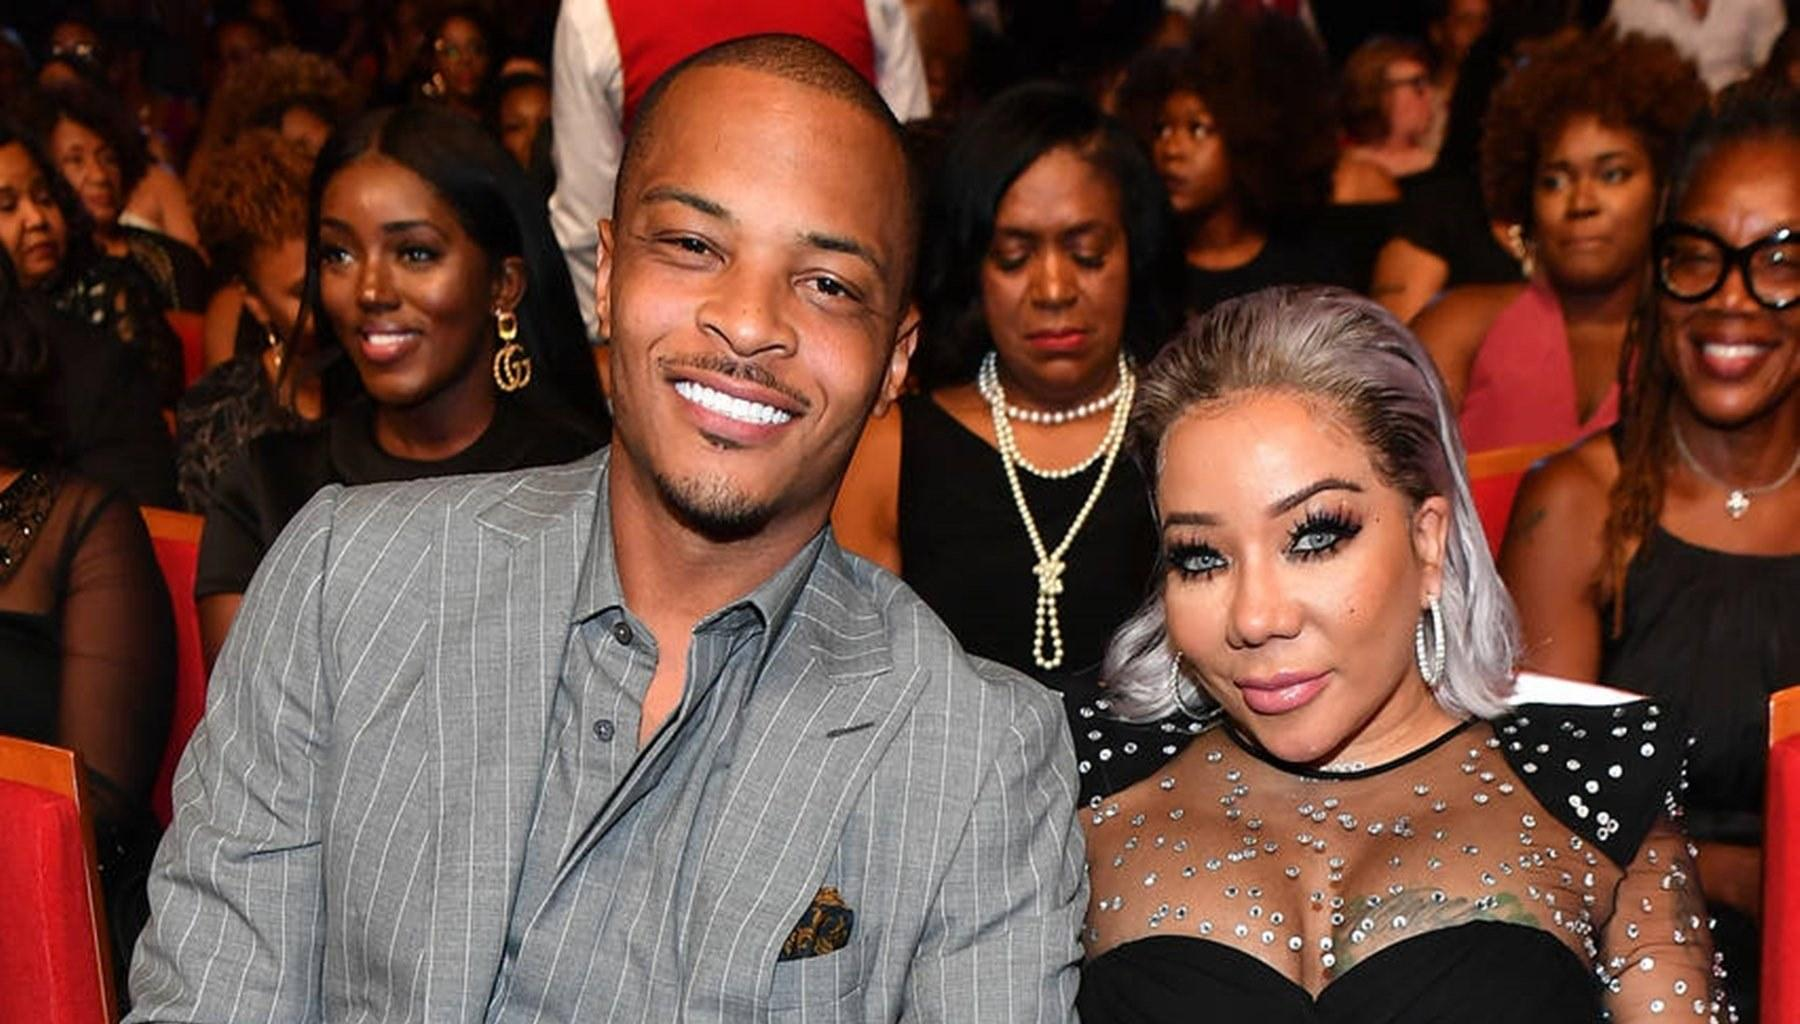 T.I. Attacks Female Rappers While Tiny Harris Tells Young Girls To Stay Away From Bad Boys In Audacious Video Interview